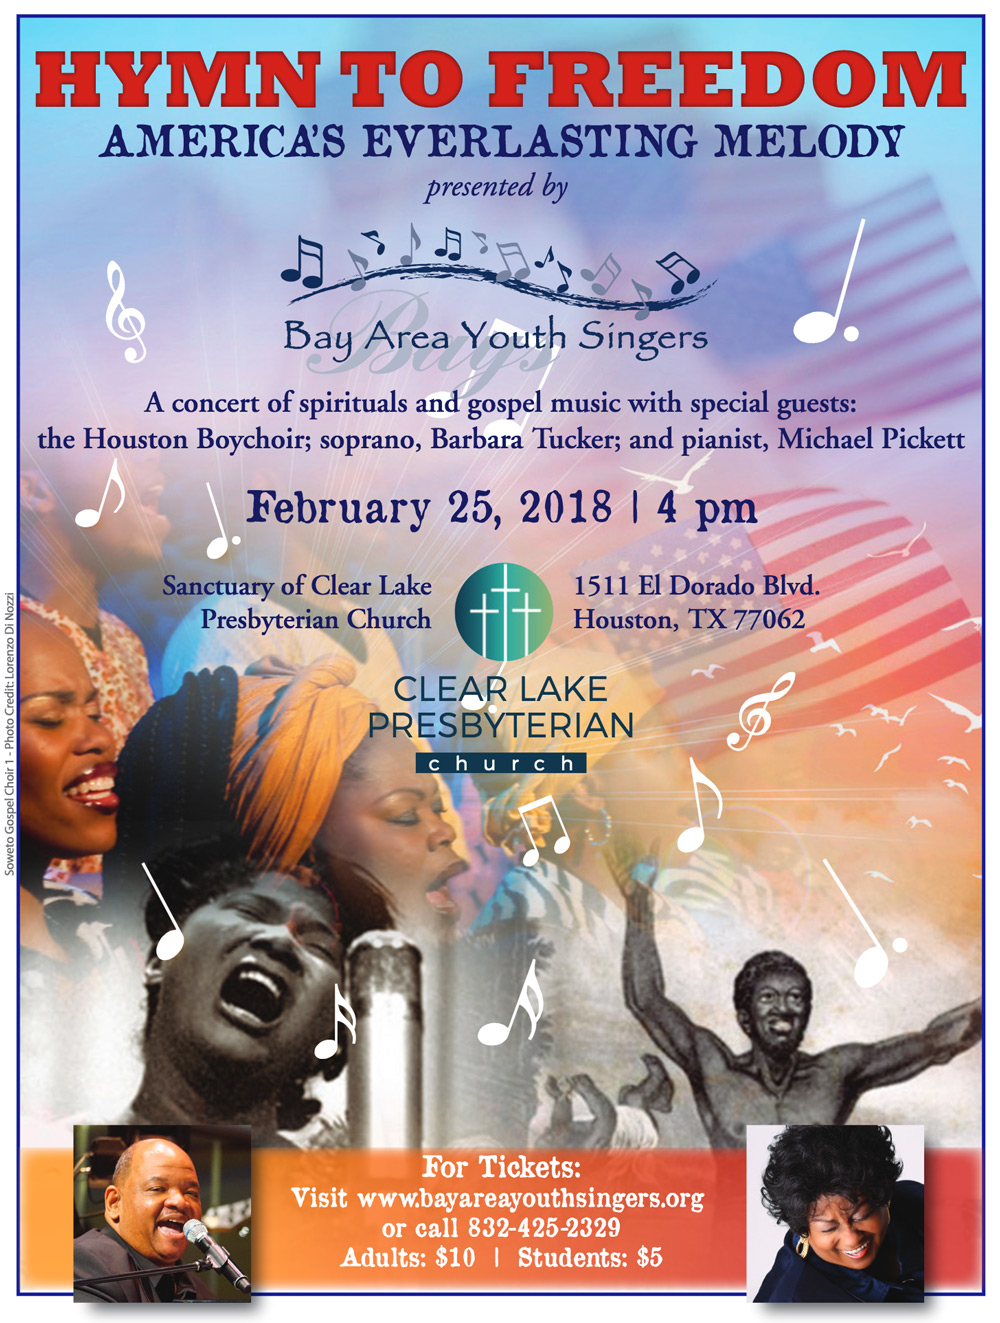 Hymn to Freedom Concert